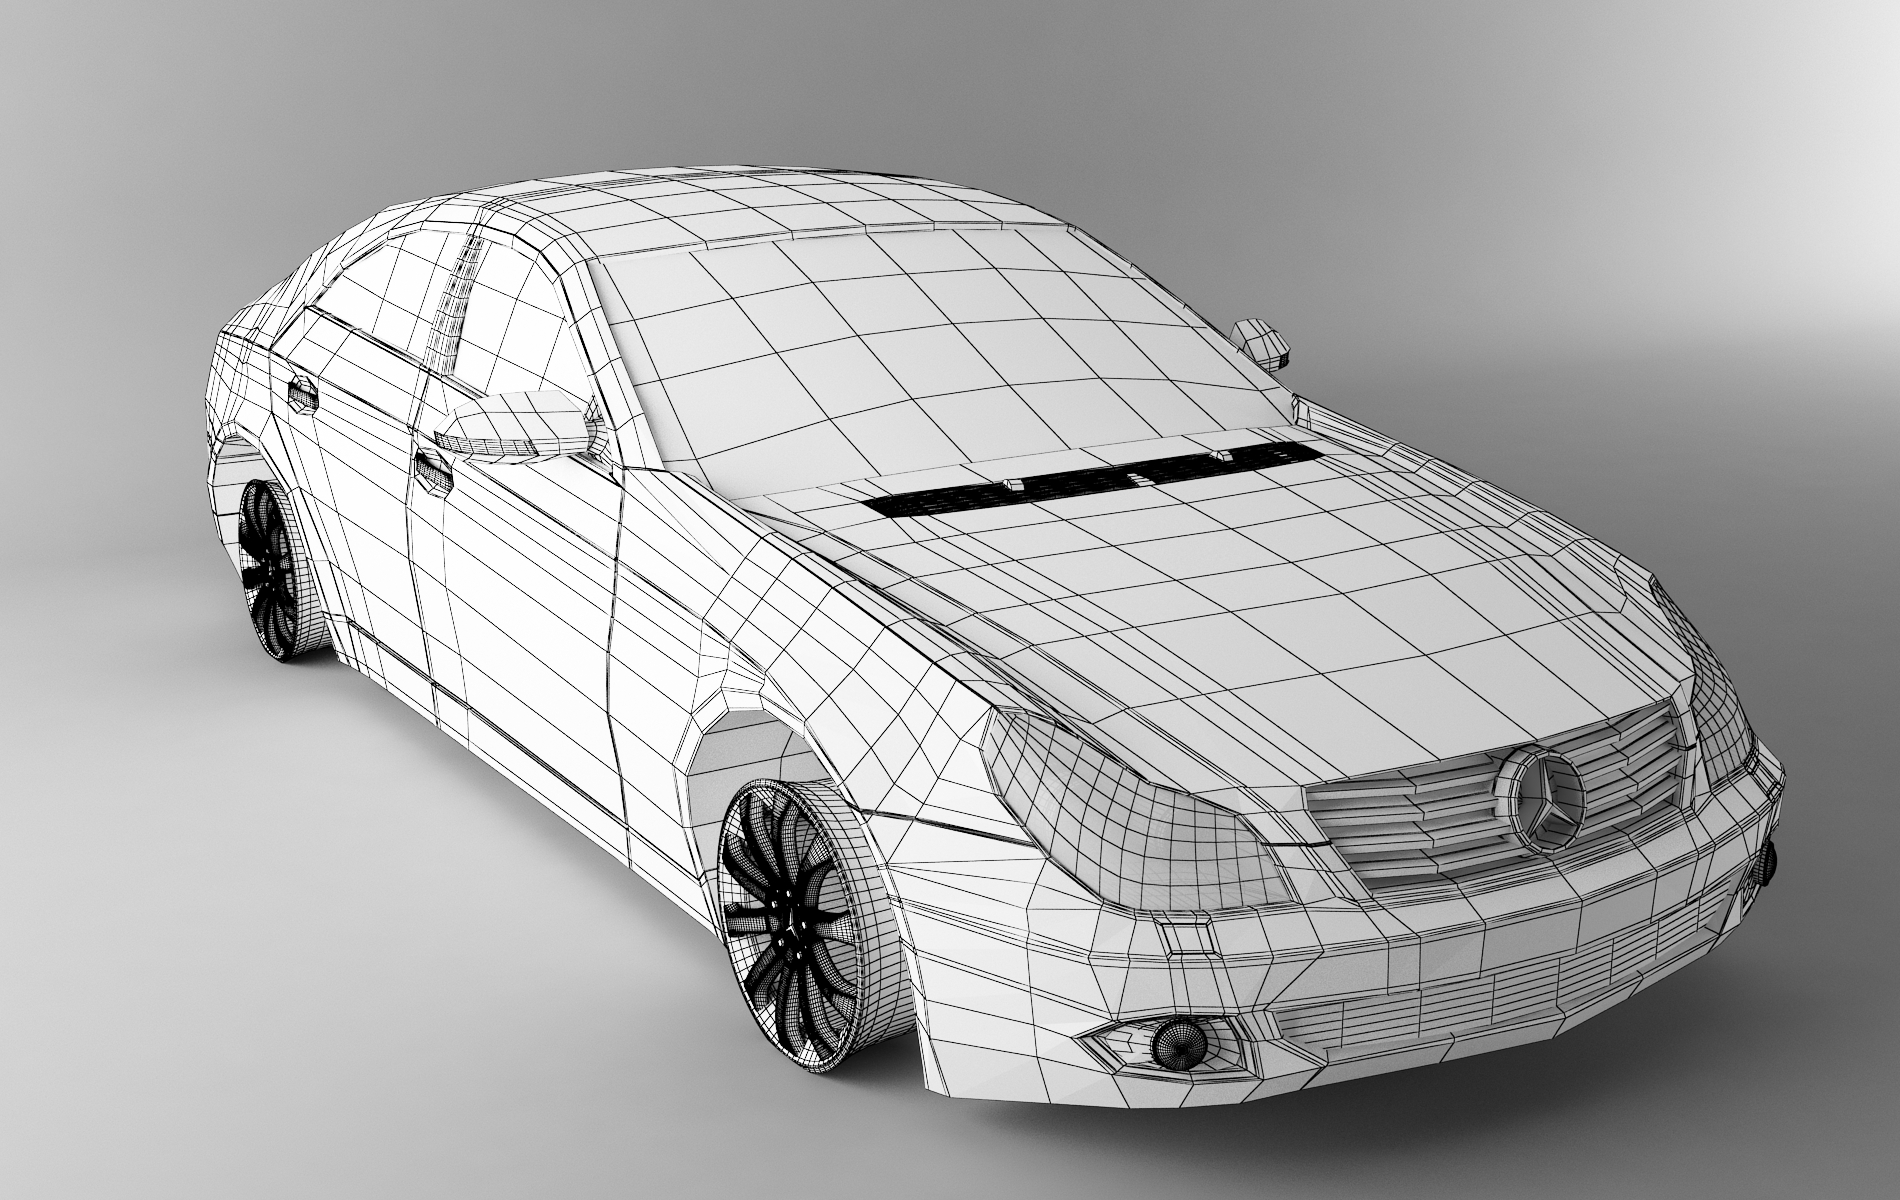 Line Drawing Render 3ds Max : Mercedes cls wireframe render by ctl d on deviantart